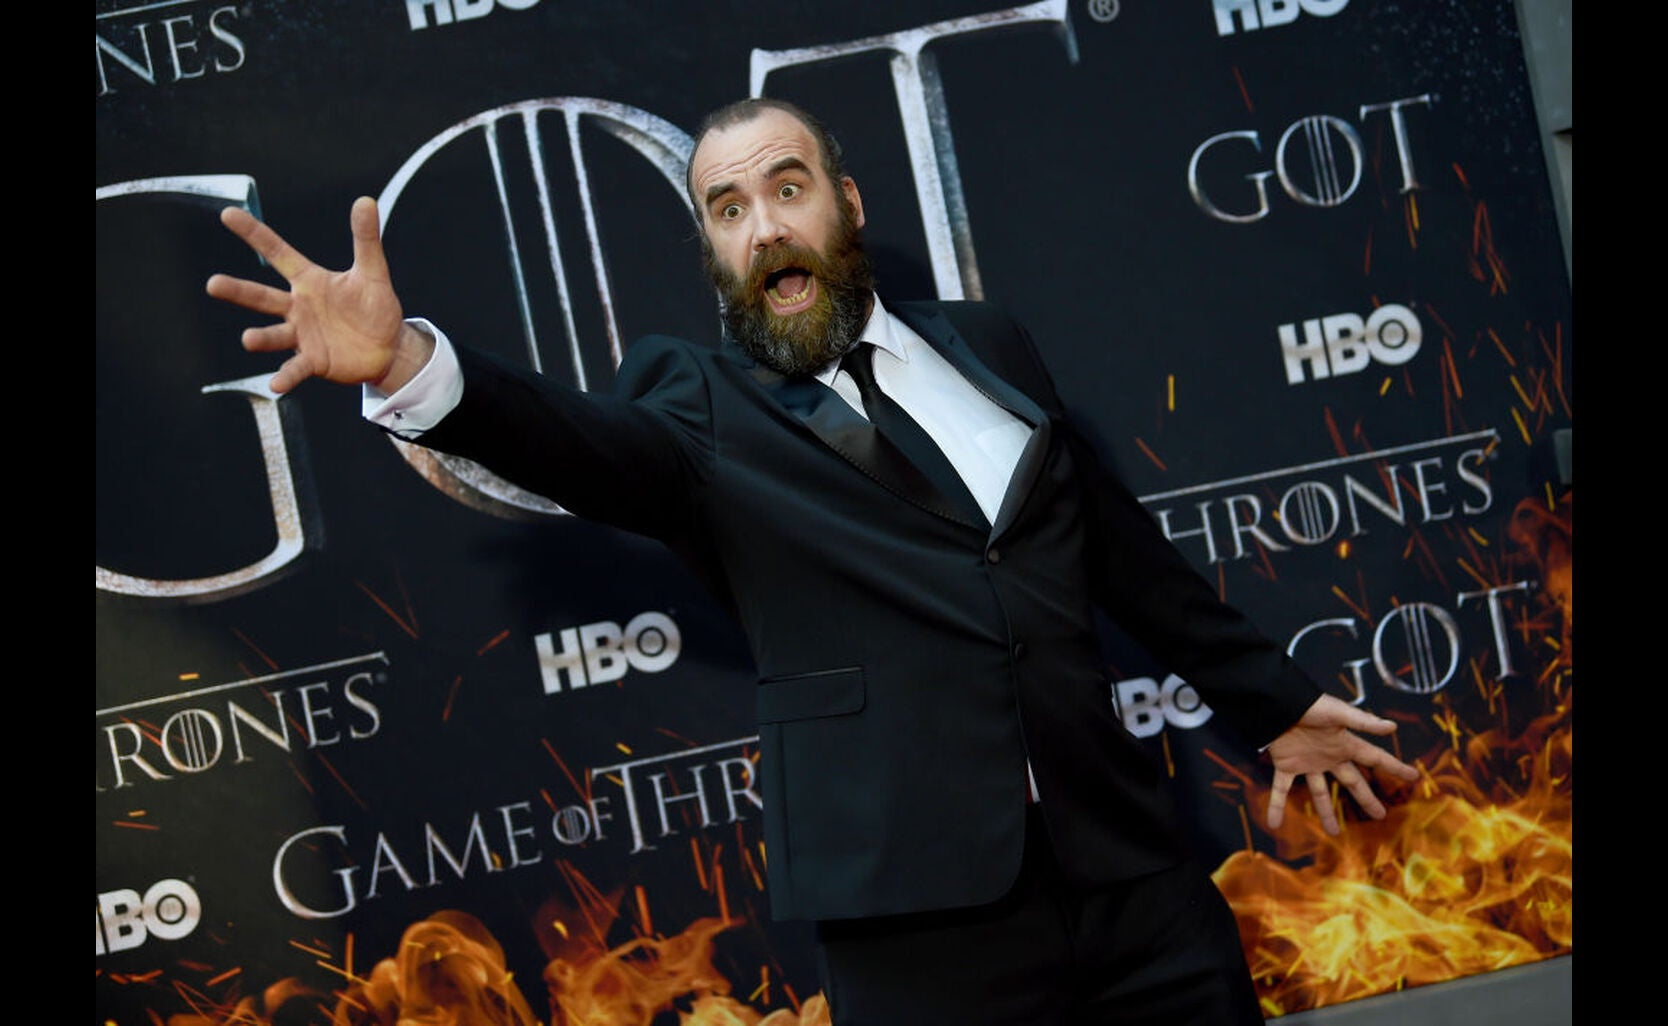 Rory McCann at the premiere of season 8 of Game of Thrones, 2019